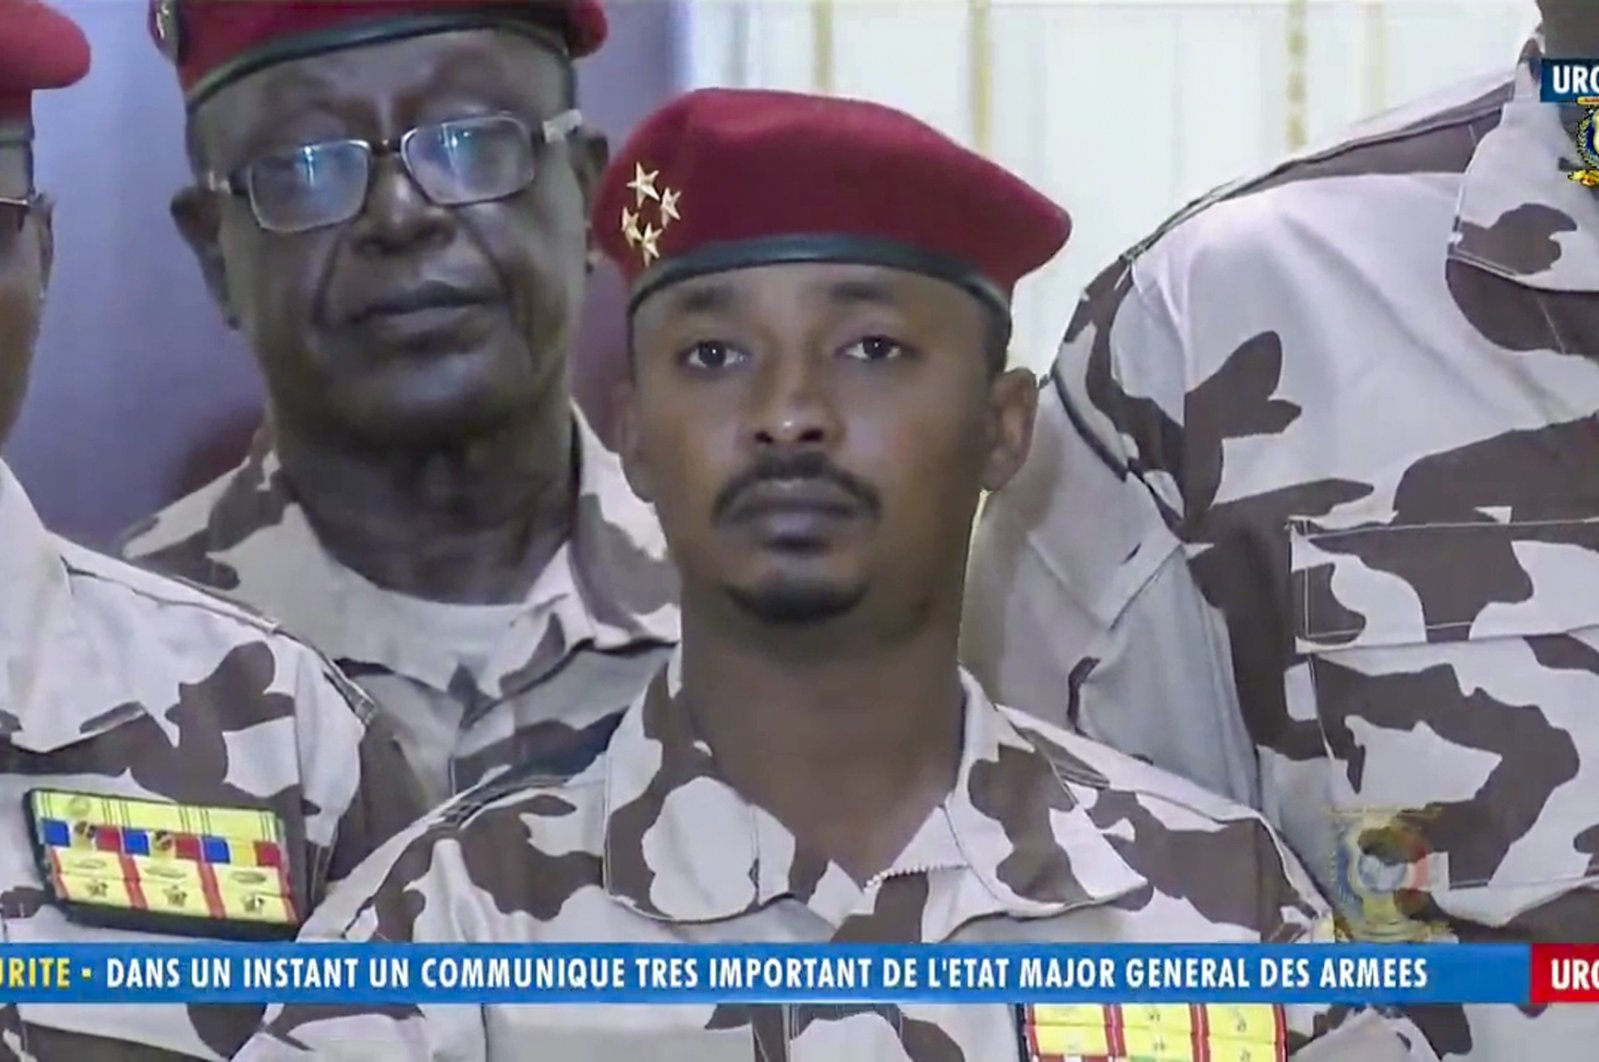 Mahamat Idriss Deby Itno (C), 37, the son of Chadian President Idriss Deby Itno, is seen during a military broadcast announcing the death of his father on state television on April 20, 2021. (AP Photo)